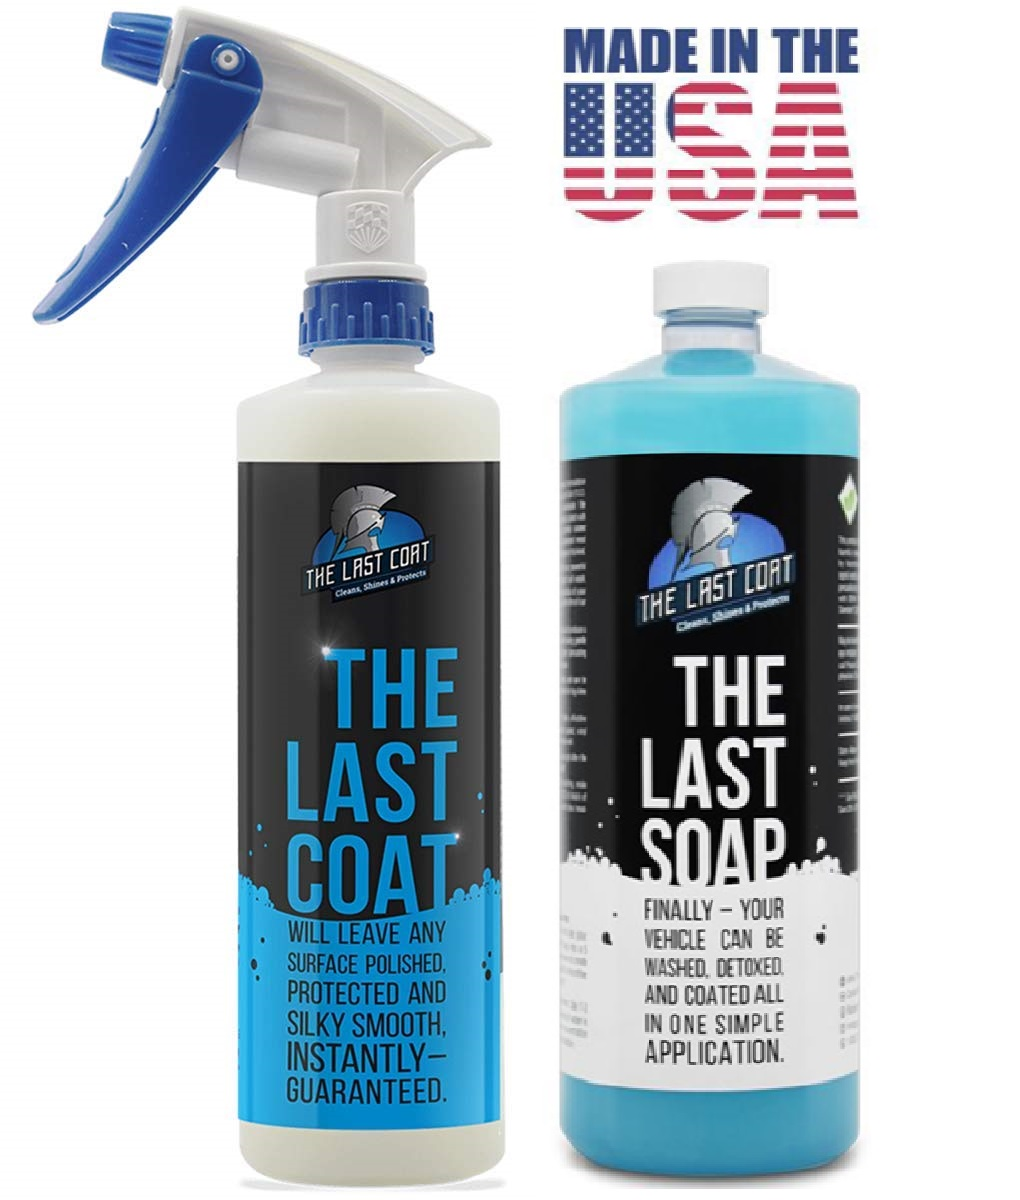 The Last Coat & The Last Soap